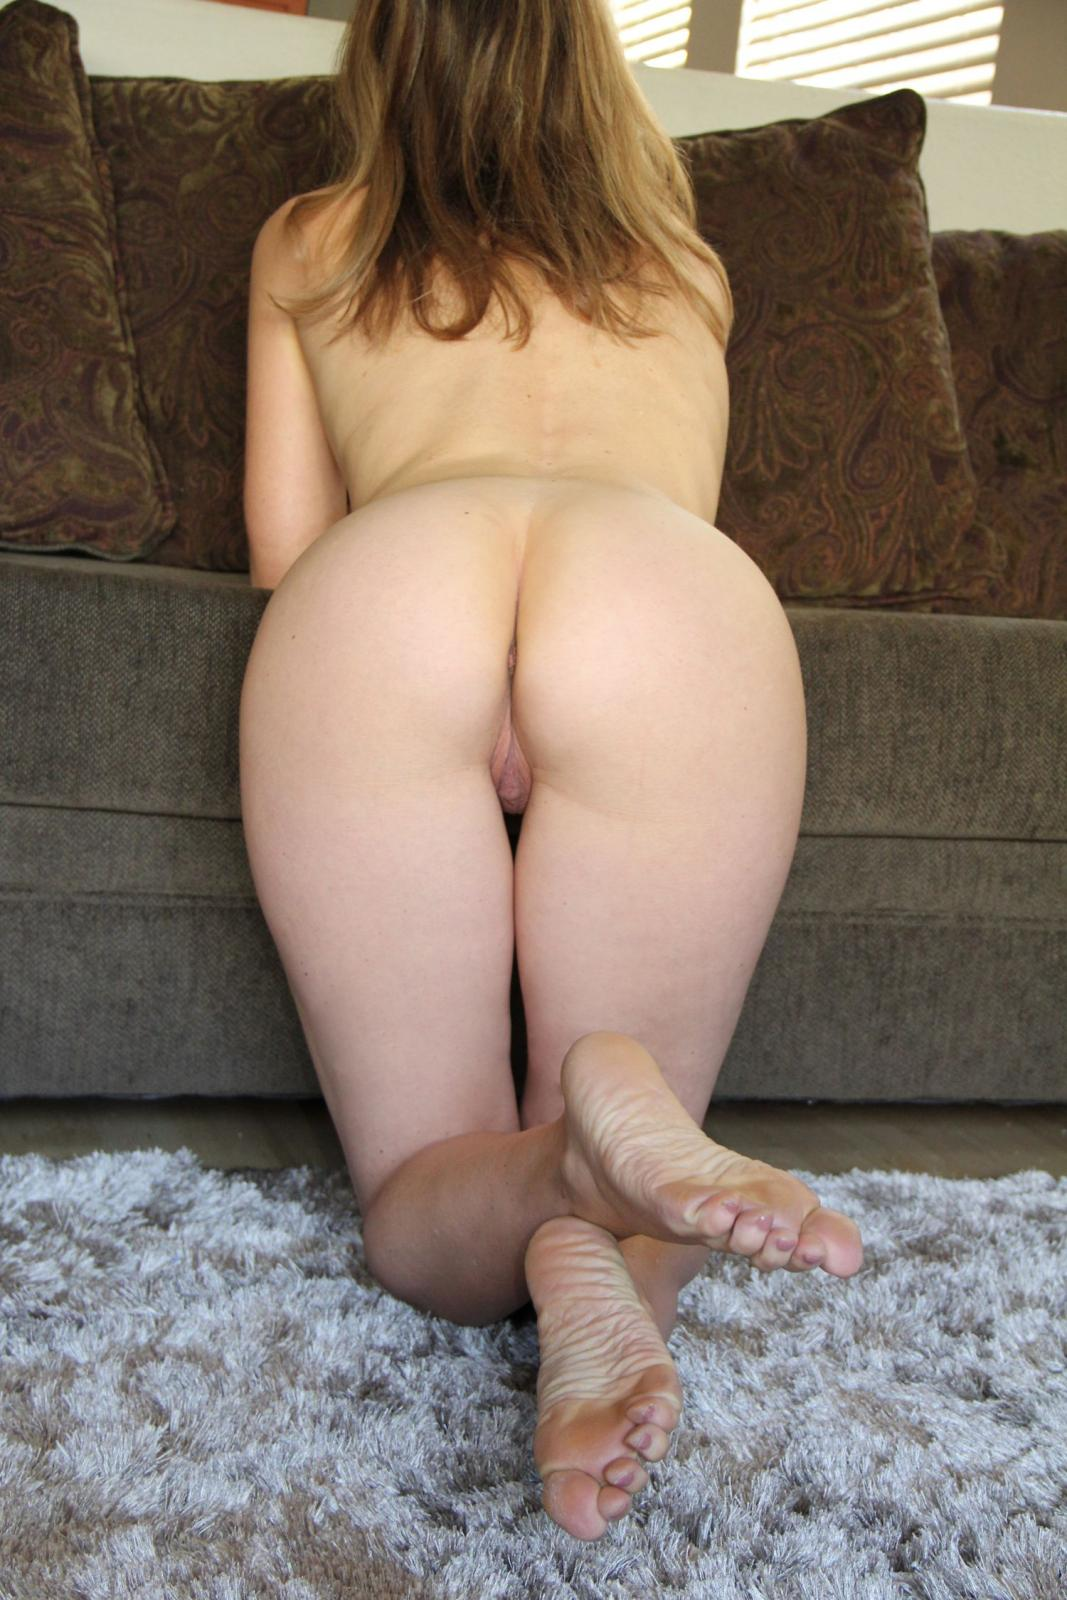 Amazing:) wife ass nudes hairy redheads